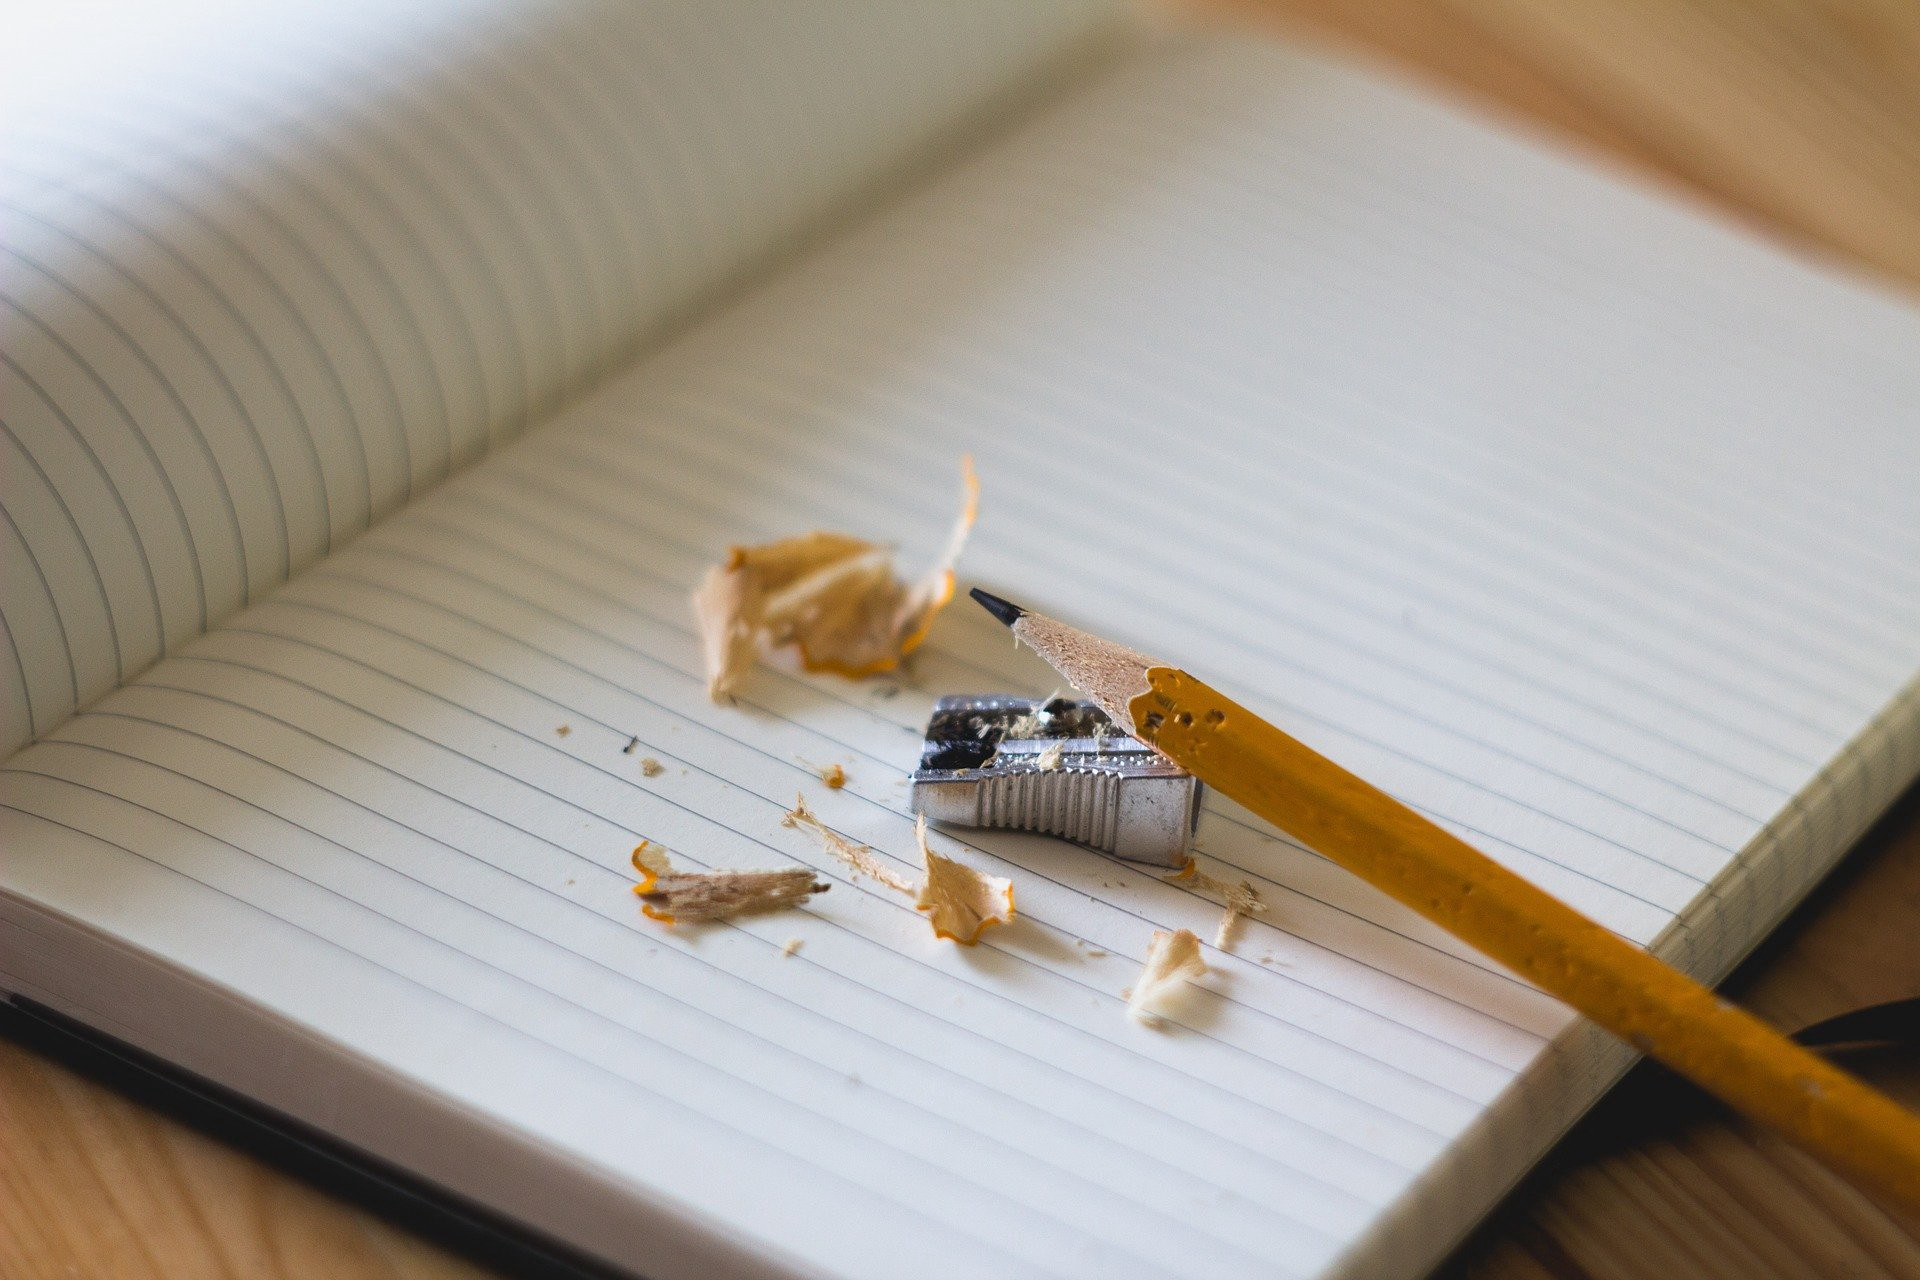 A blank notebook with a pencil and sharpener.